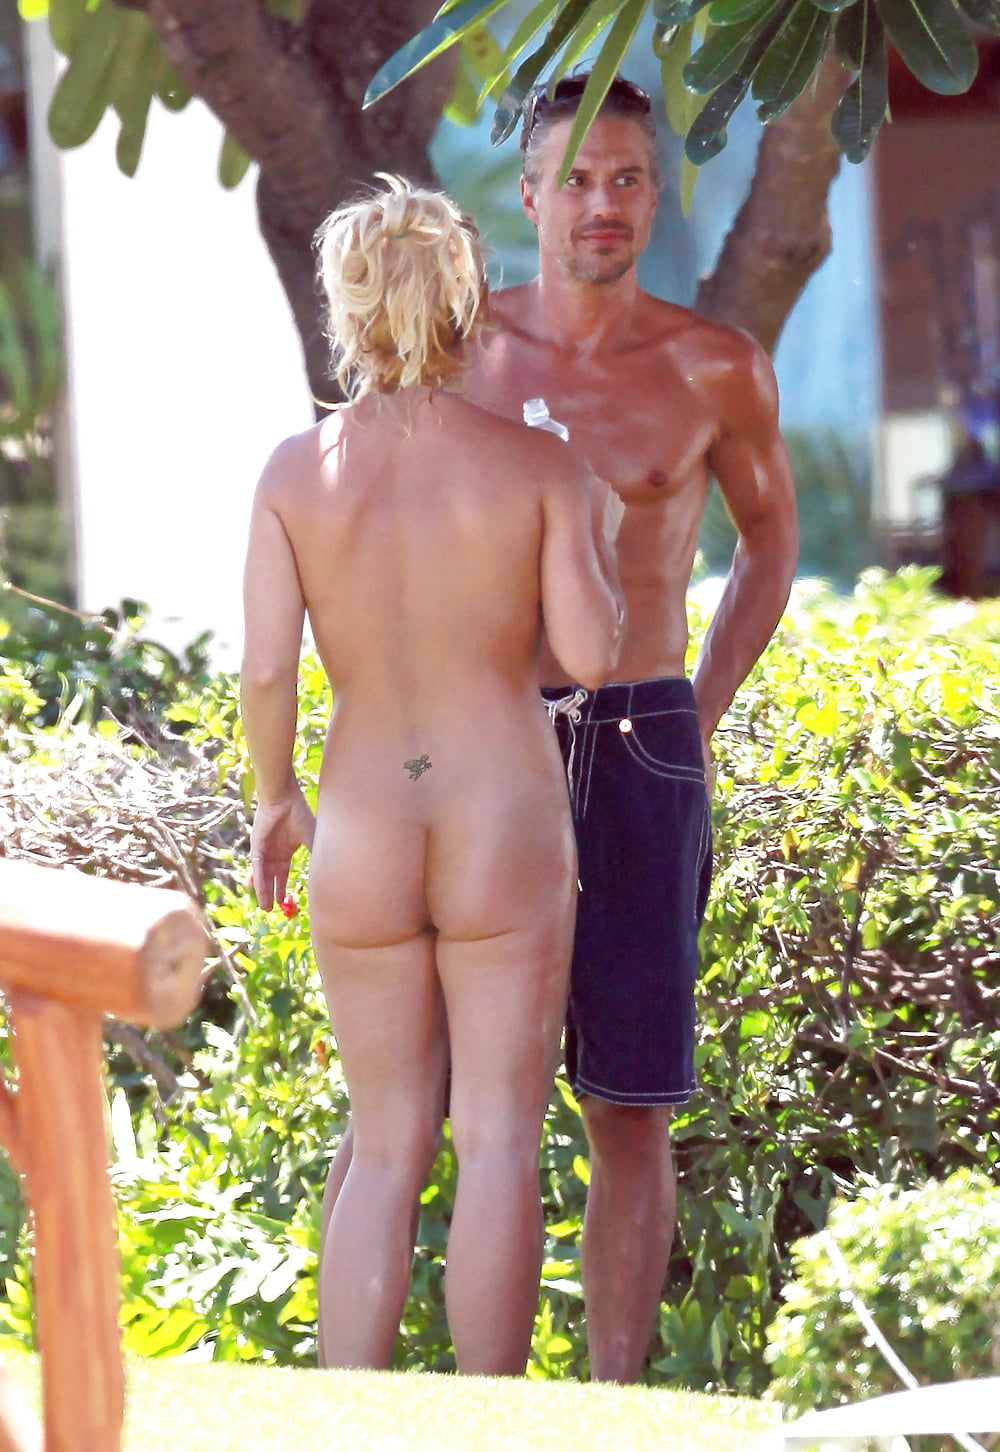 britney spears at a nude beach